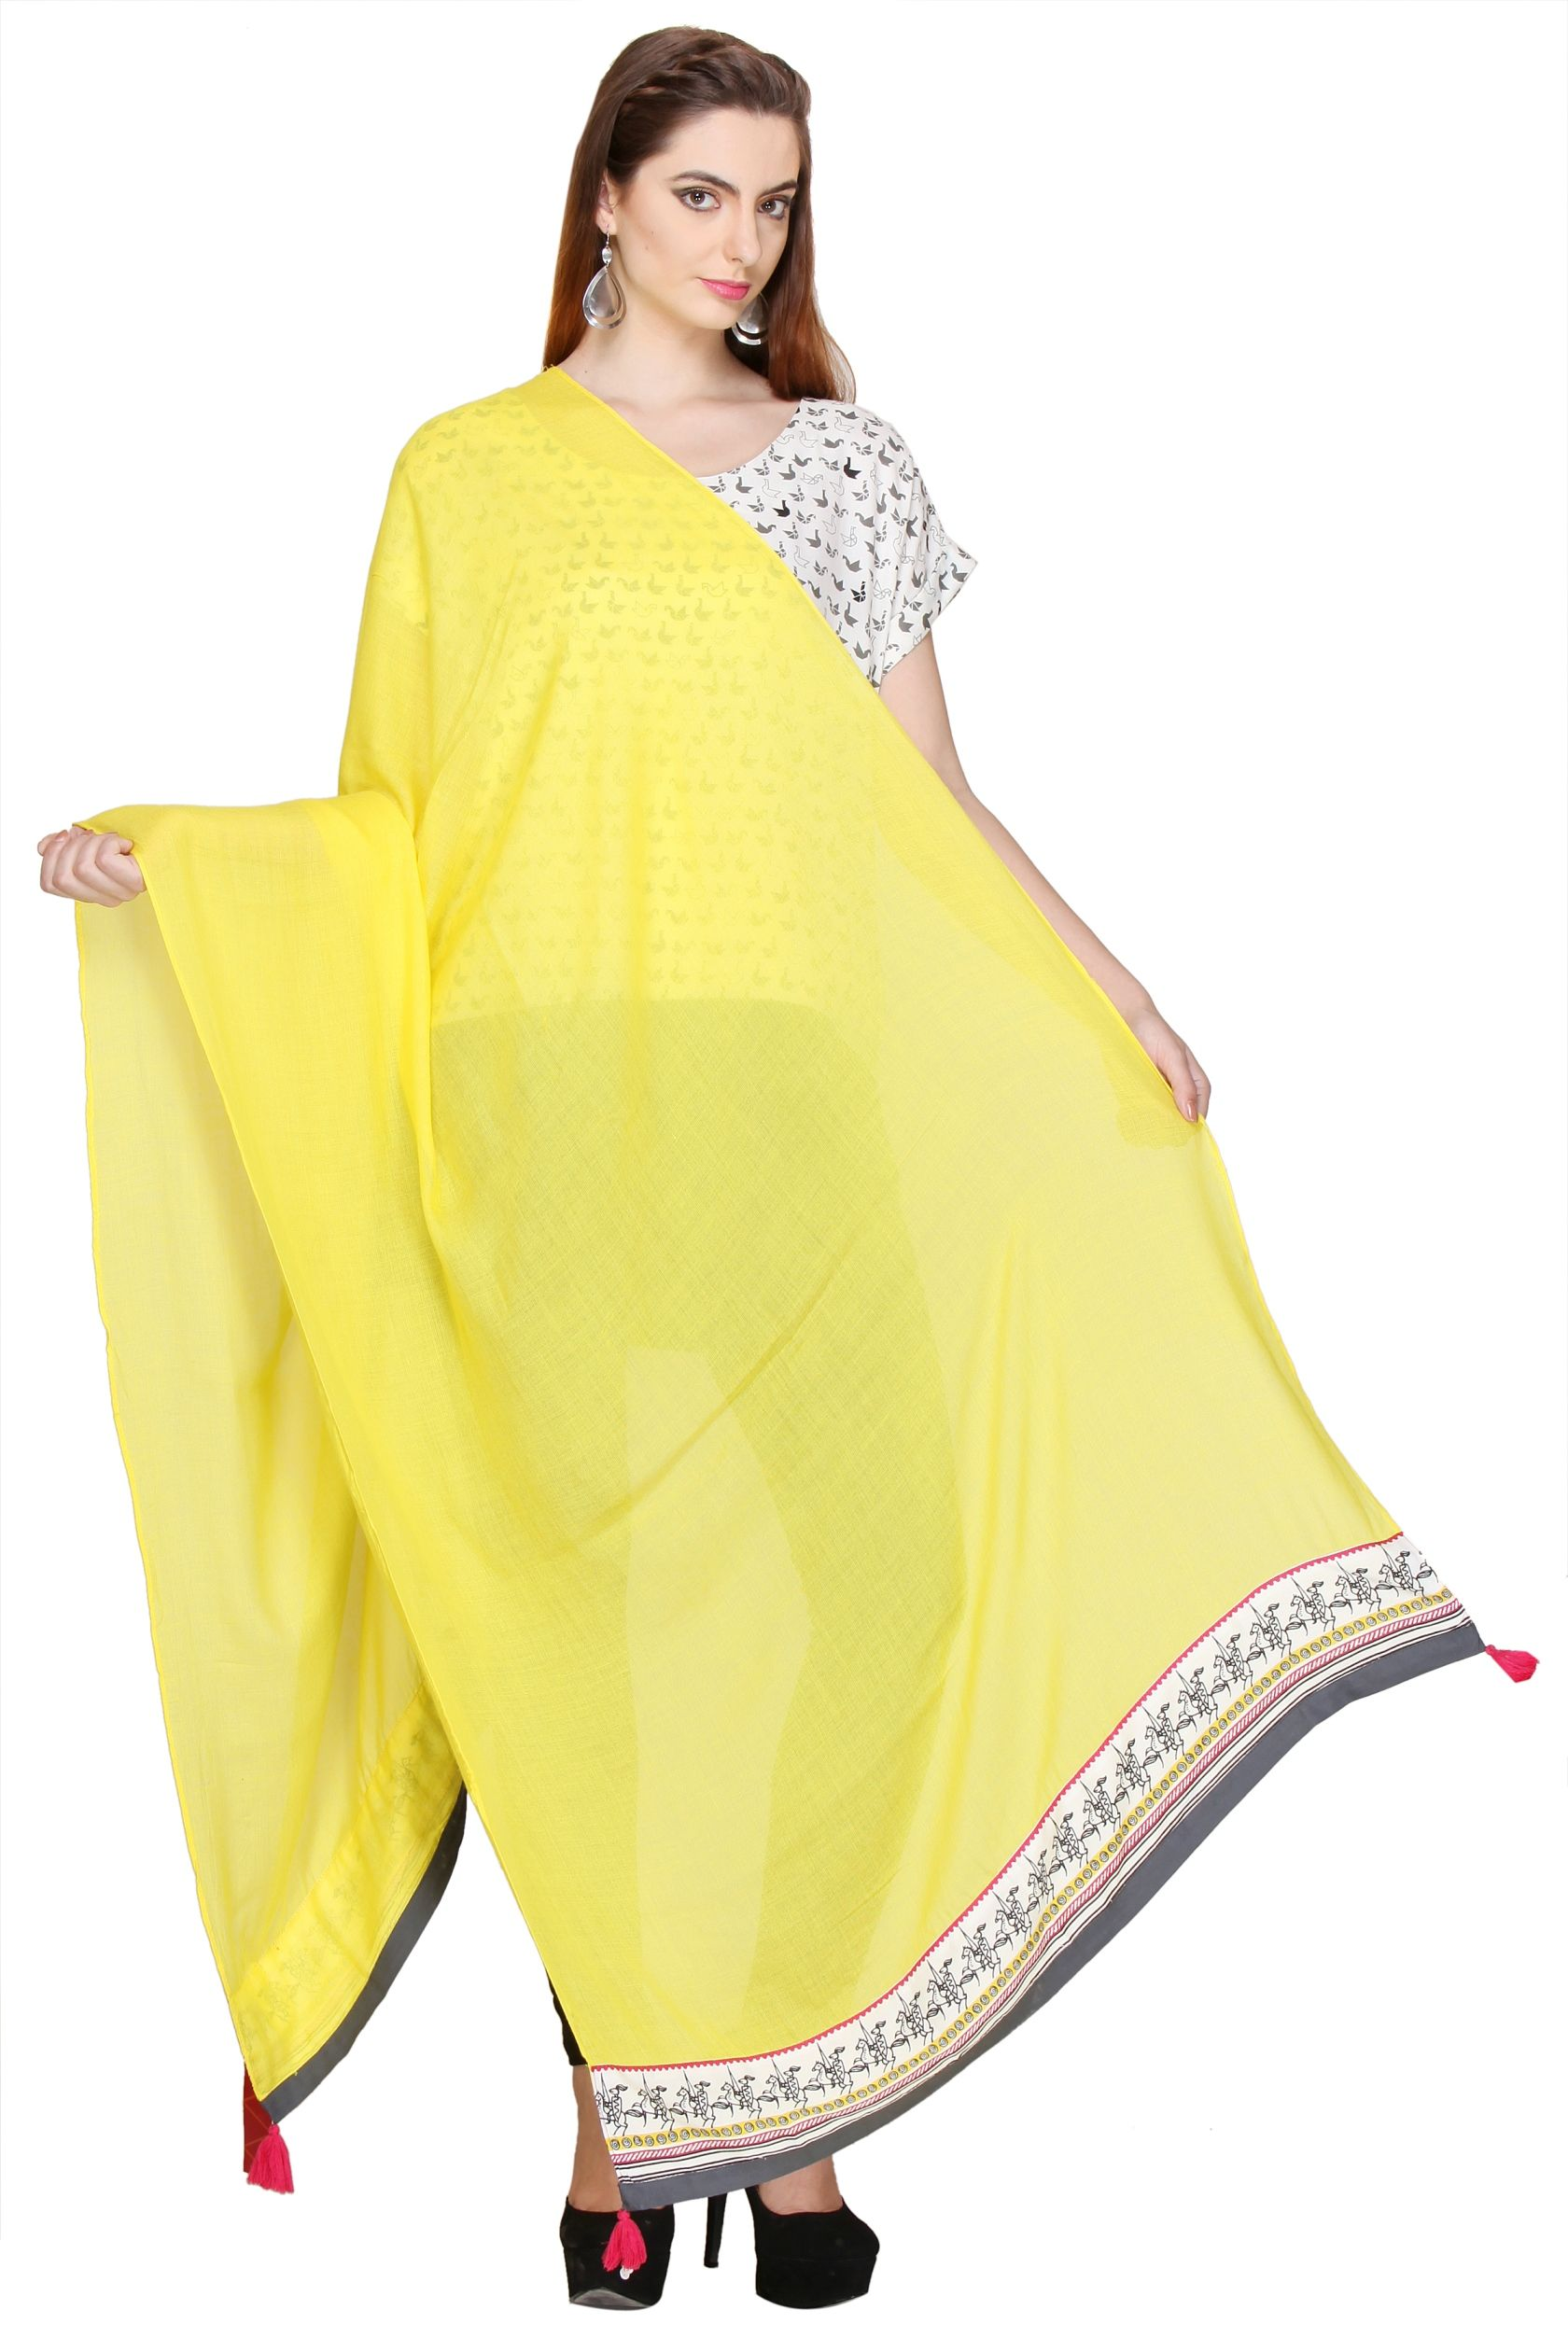 fbc42876eb0  Online  Shopping  India Store Sells W Smart Casual YELLOW DUPATTA like  Pomp a traditional outlook with this brilliant ethnic designed